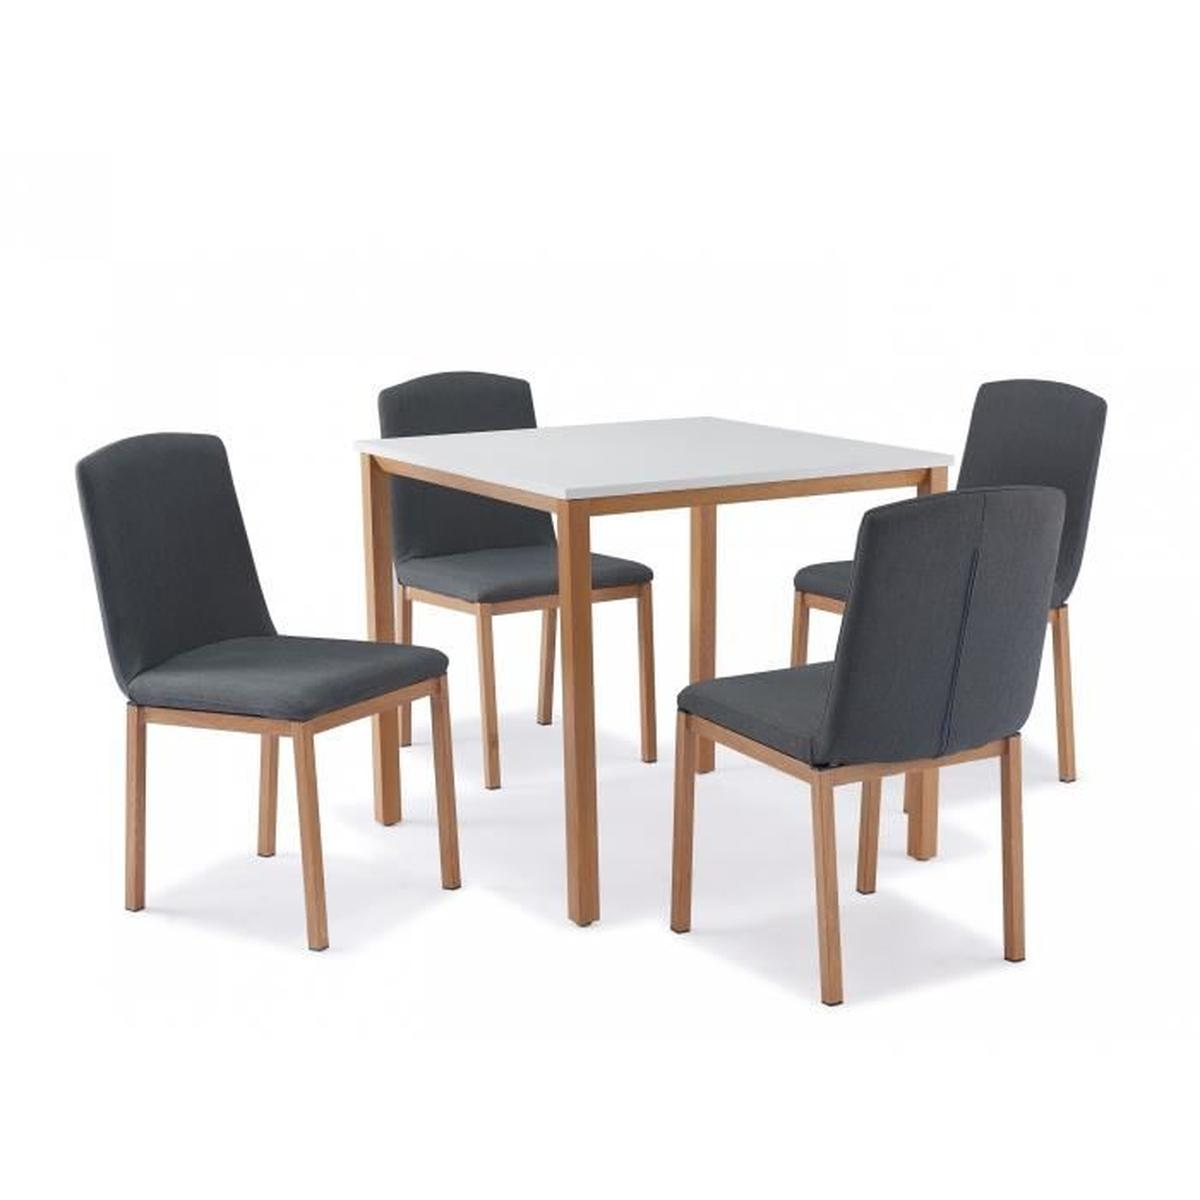 Scandinave Extensible Table Carrée Scandinave Scandinave Table Carrée Table Carrée Extensible Yyb7f6g